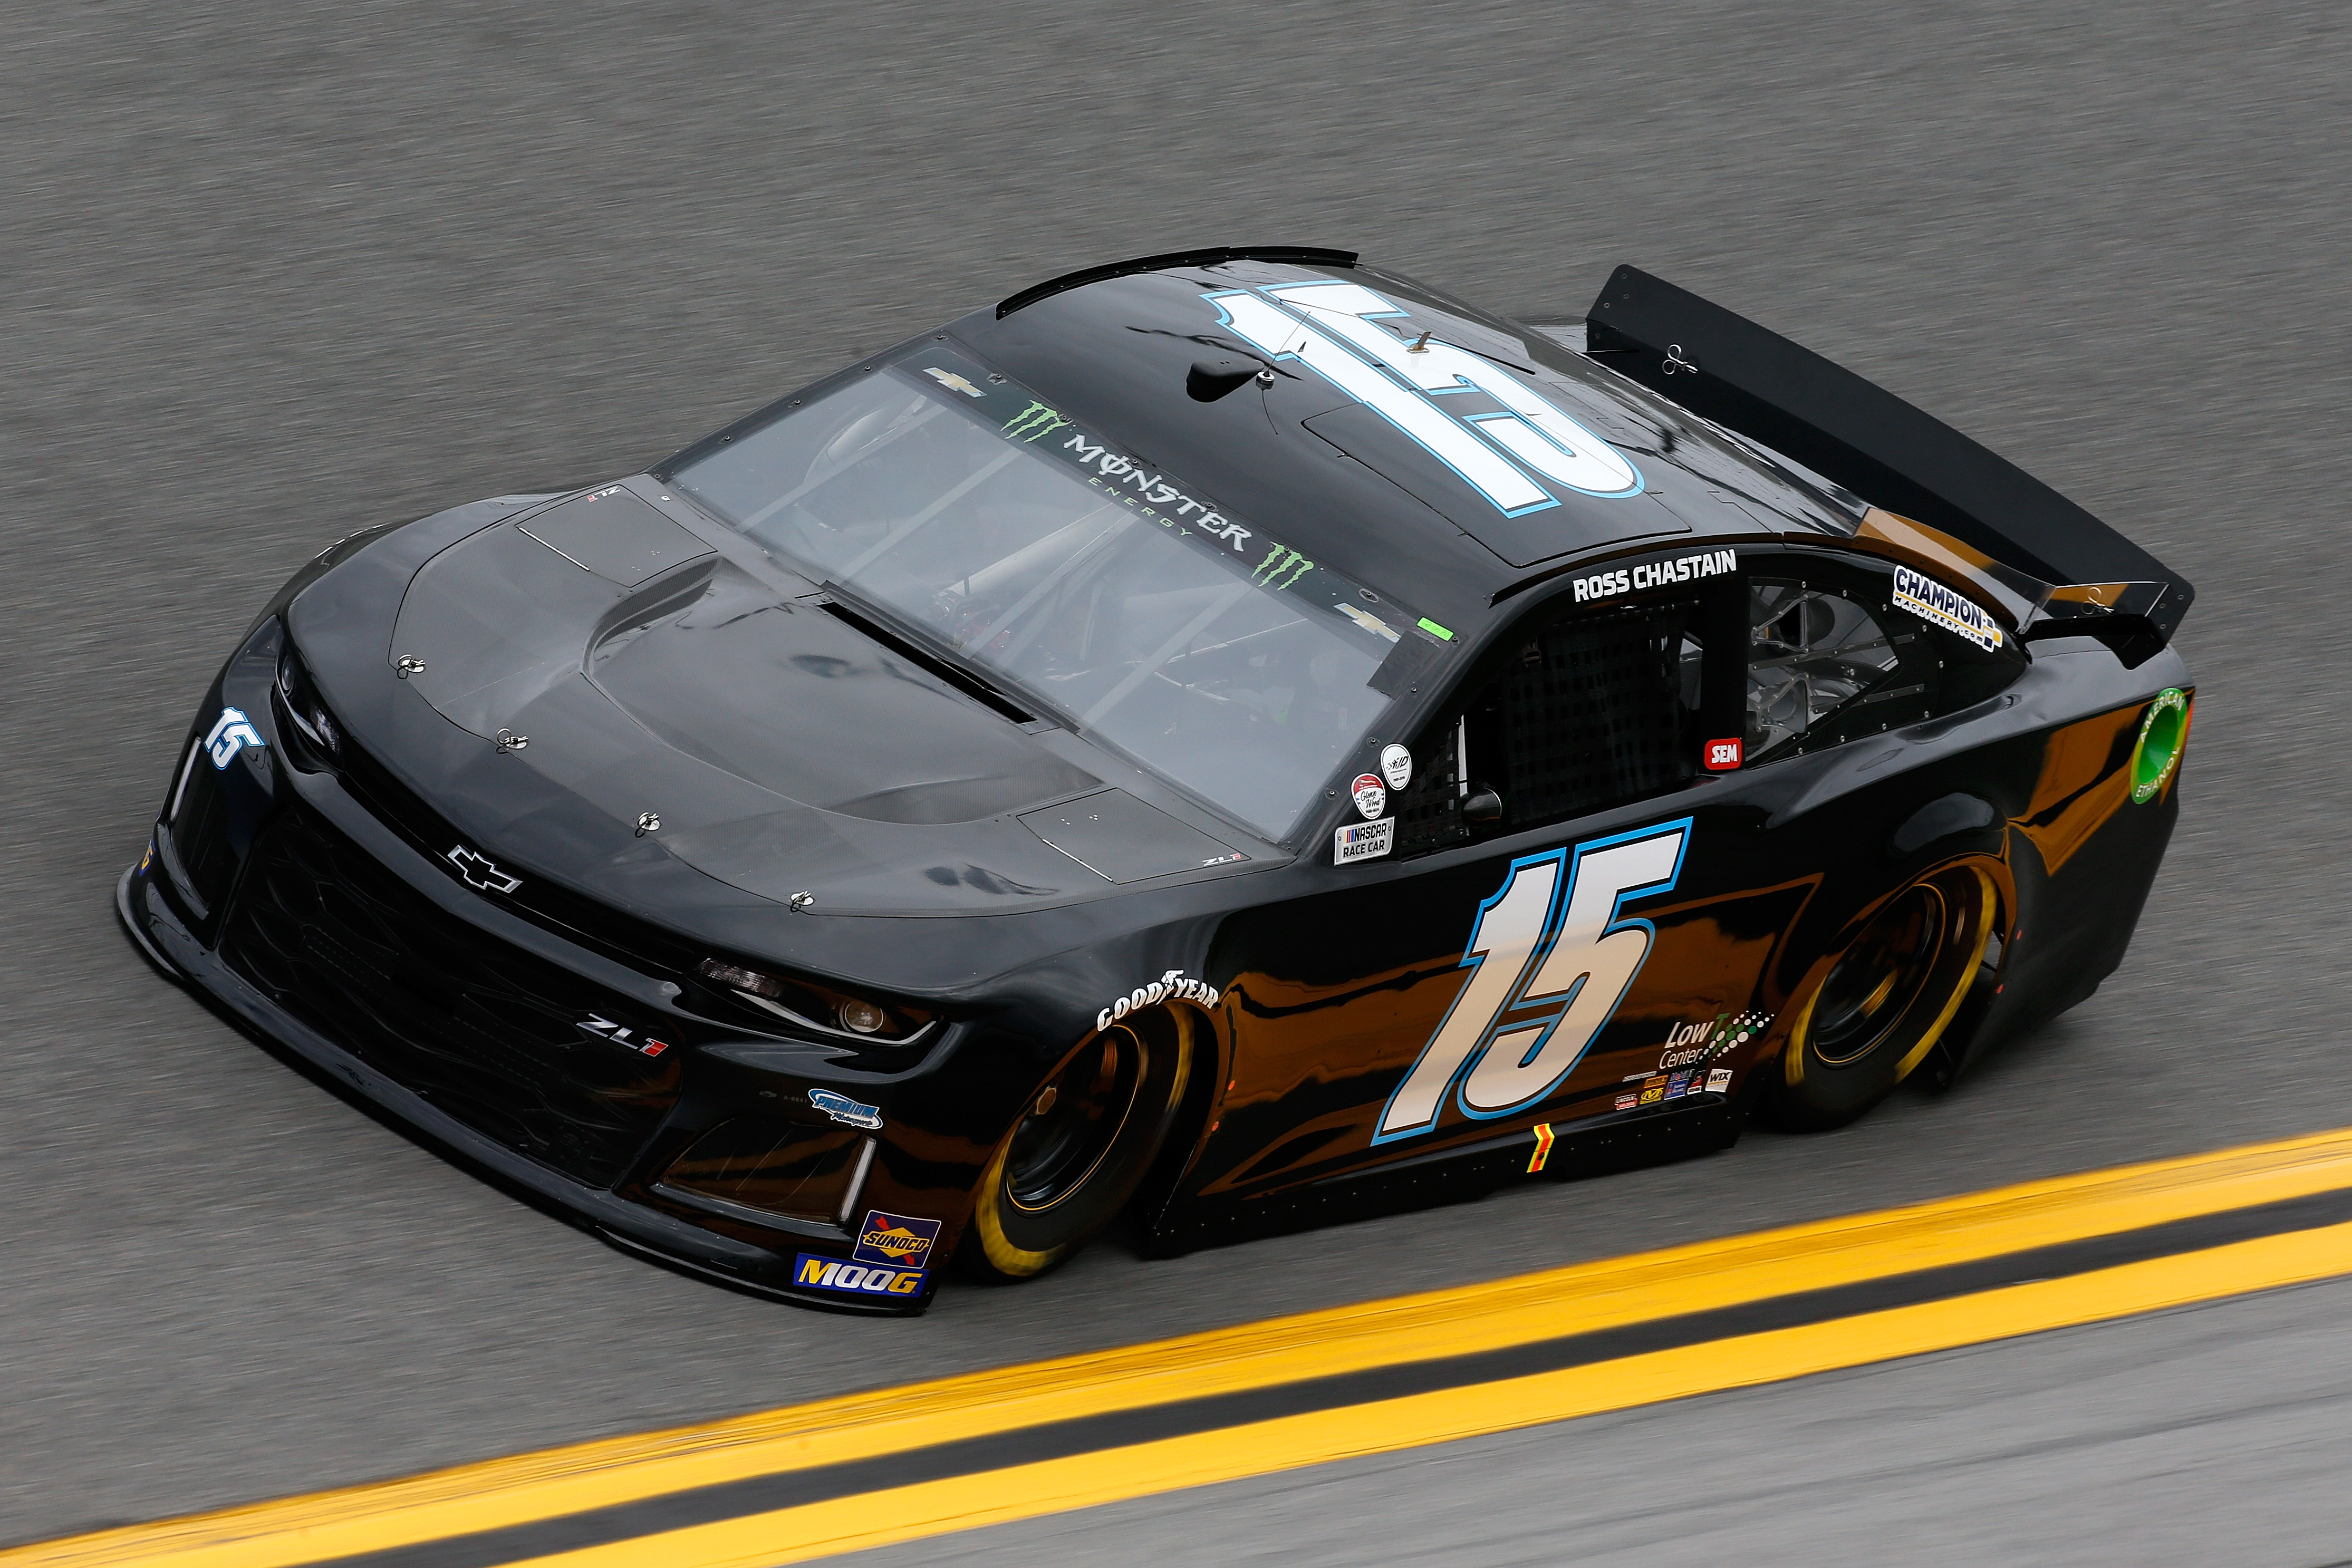 Driver Ross Chastain drives the No. 15 car during practice for the Monster Energy Cup Series 61st Annual Daytona 500